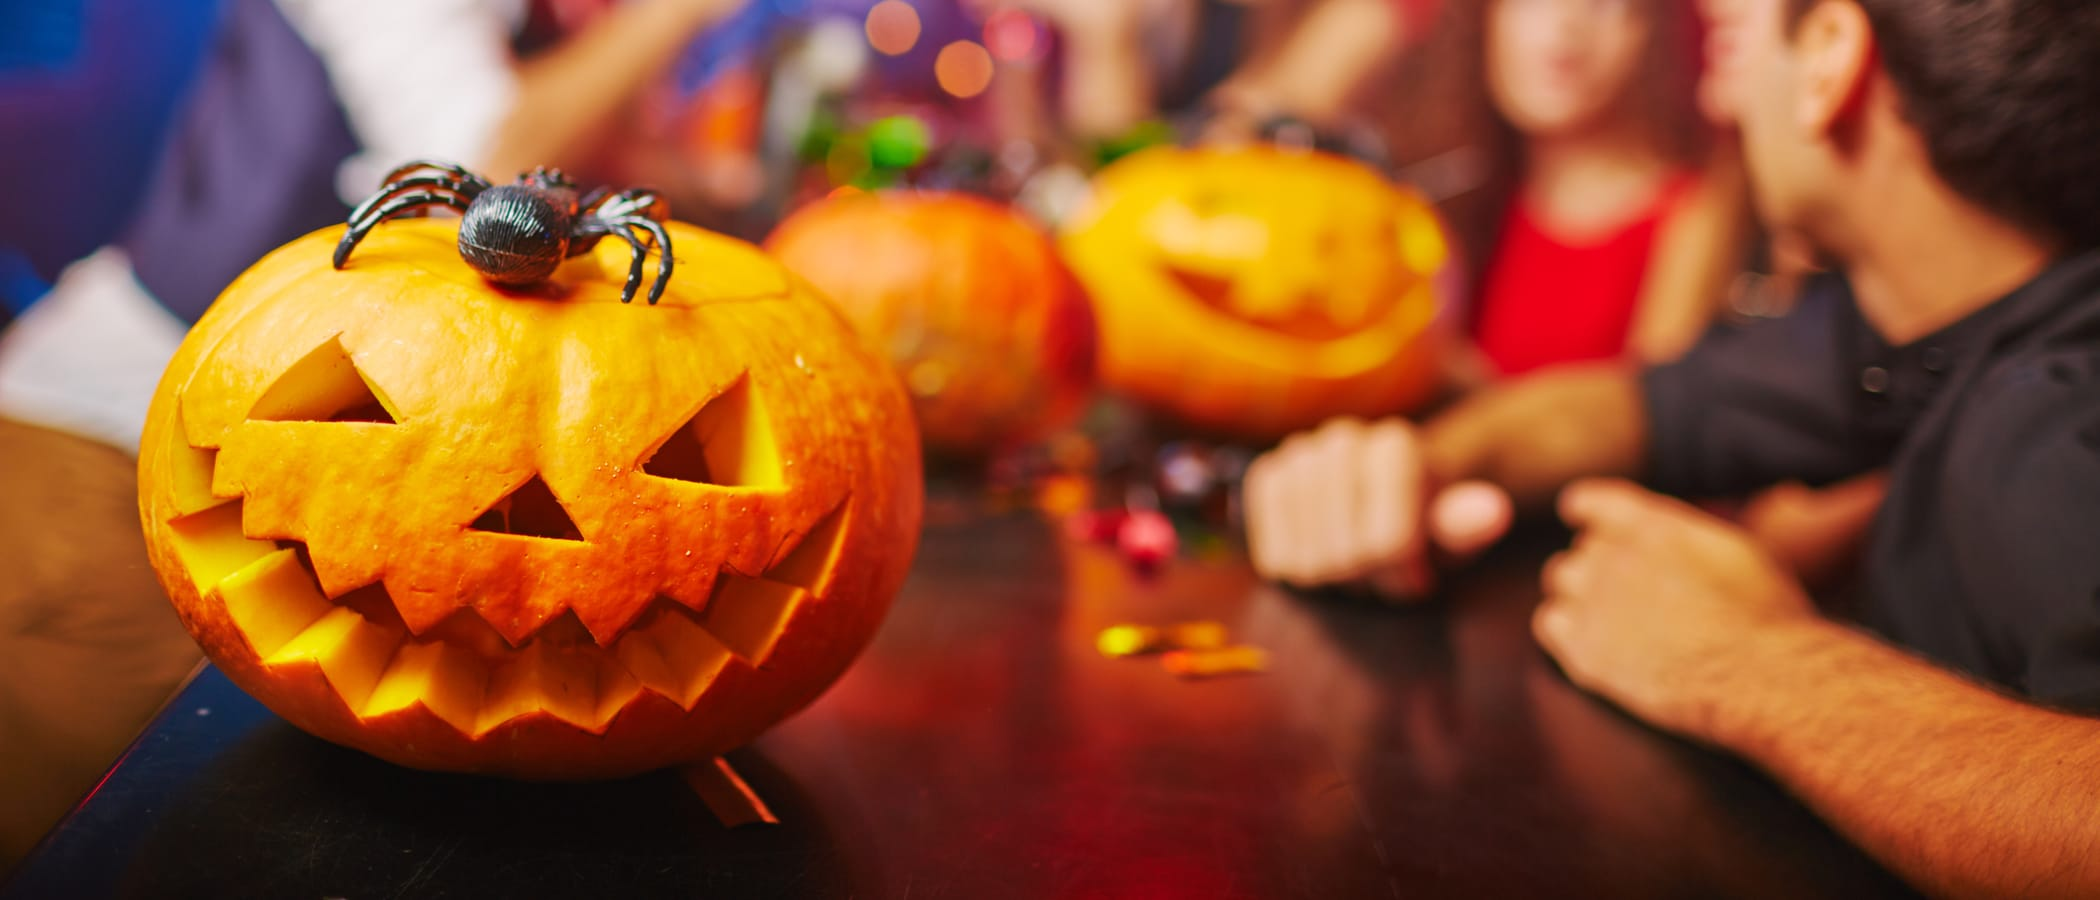 Workplace Halloween Celebrations Can Lead to Scary Situations